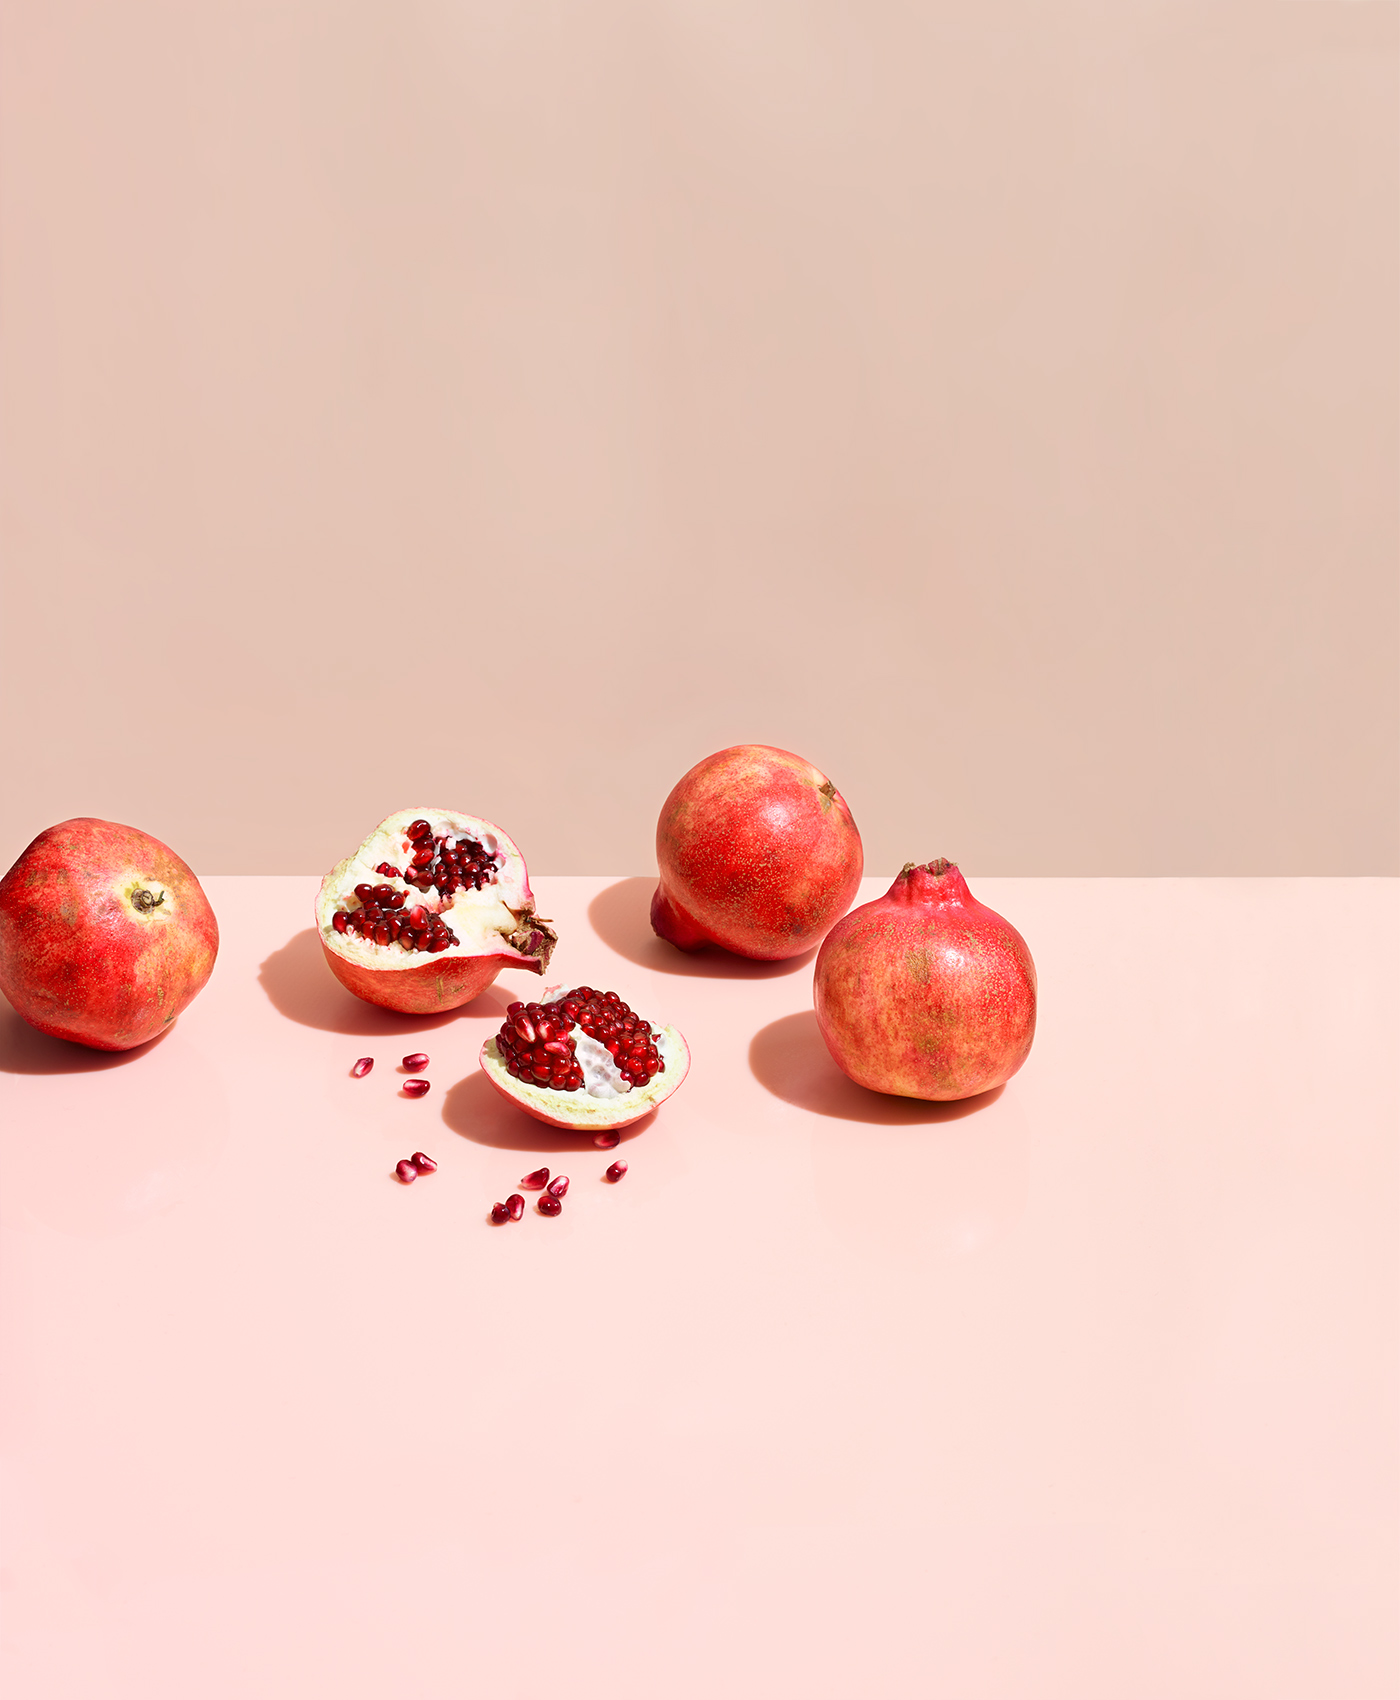 Food: Pomegranate